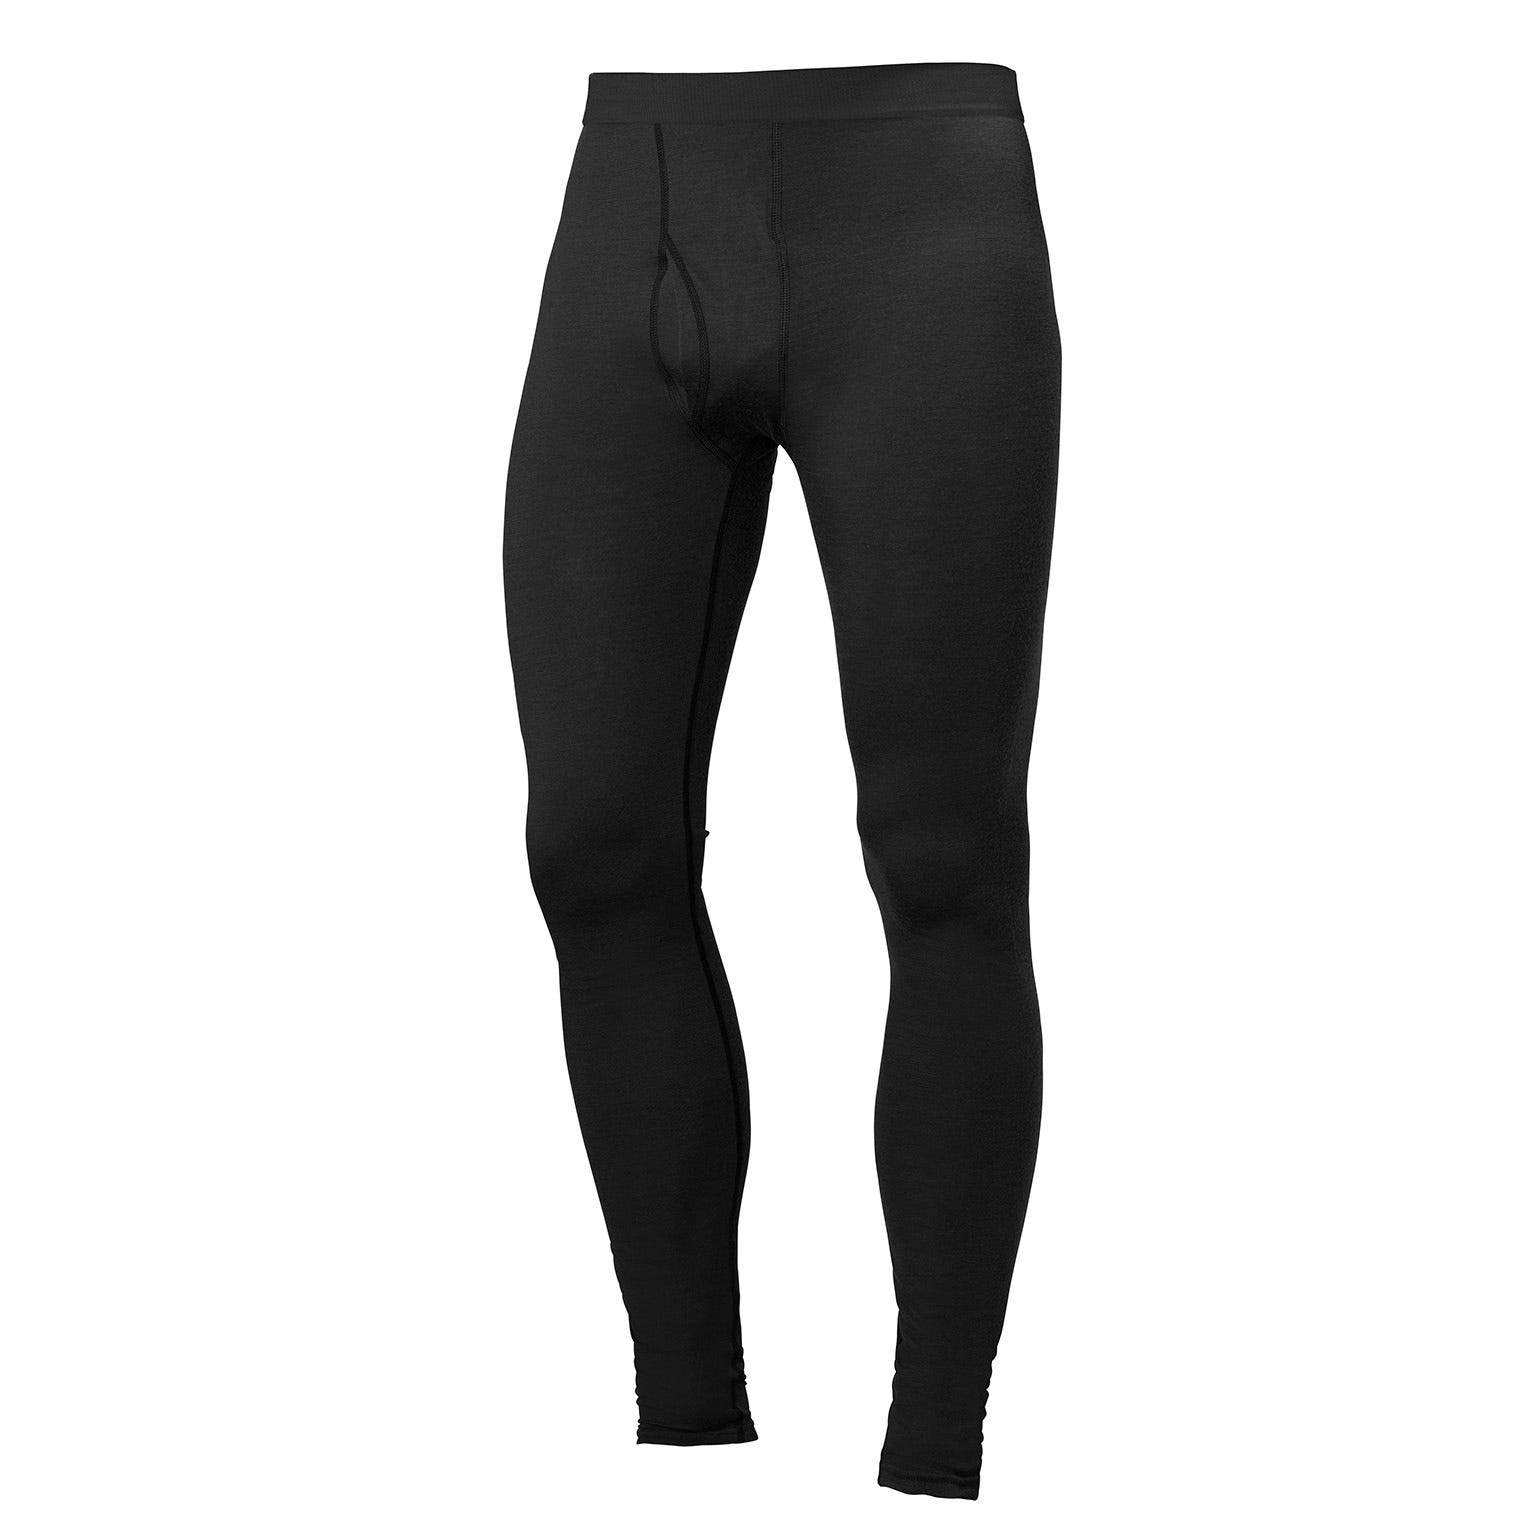 Helly Hansen Mens Lifa Wicking Workwear Base Layer Pants